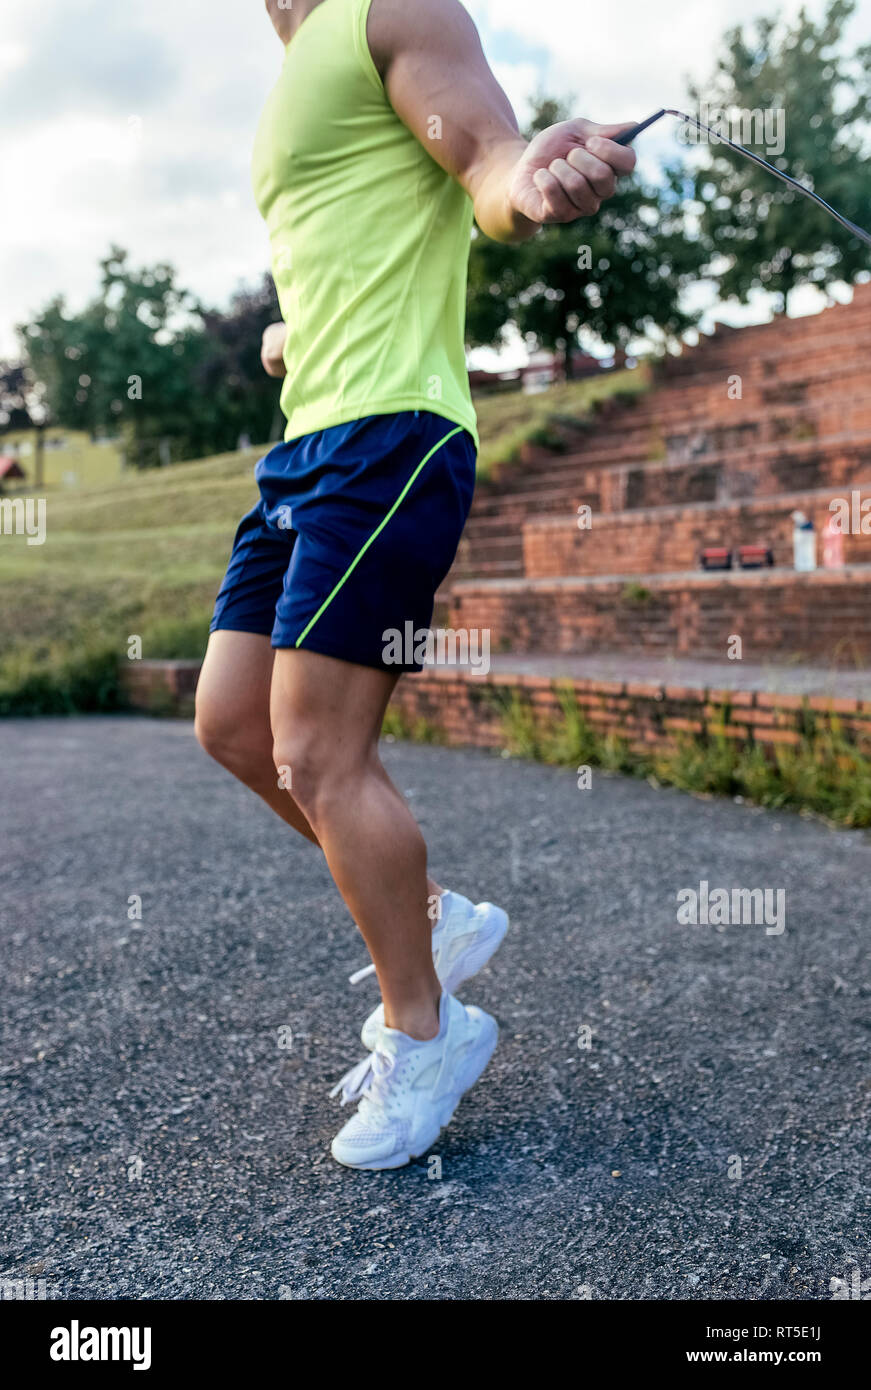 Close-up of muscular man skipping rope outdoors - Stock Image